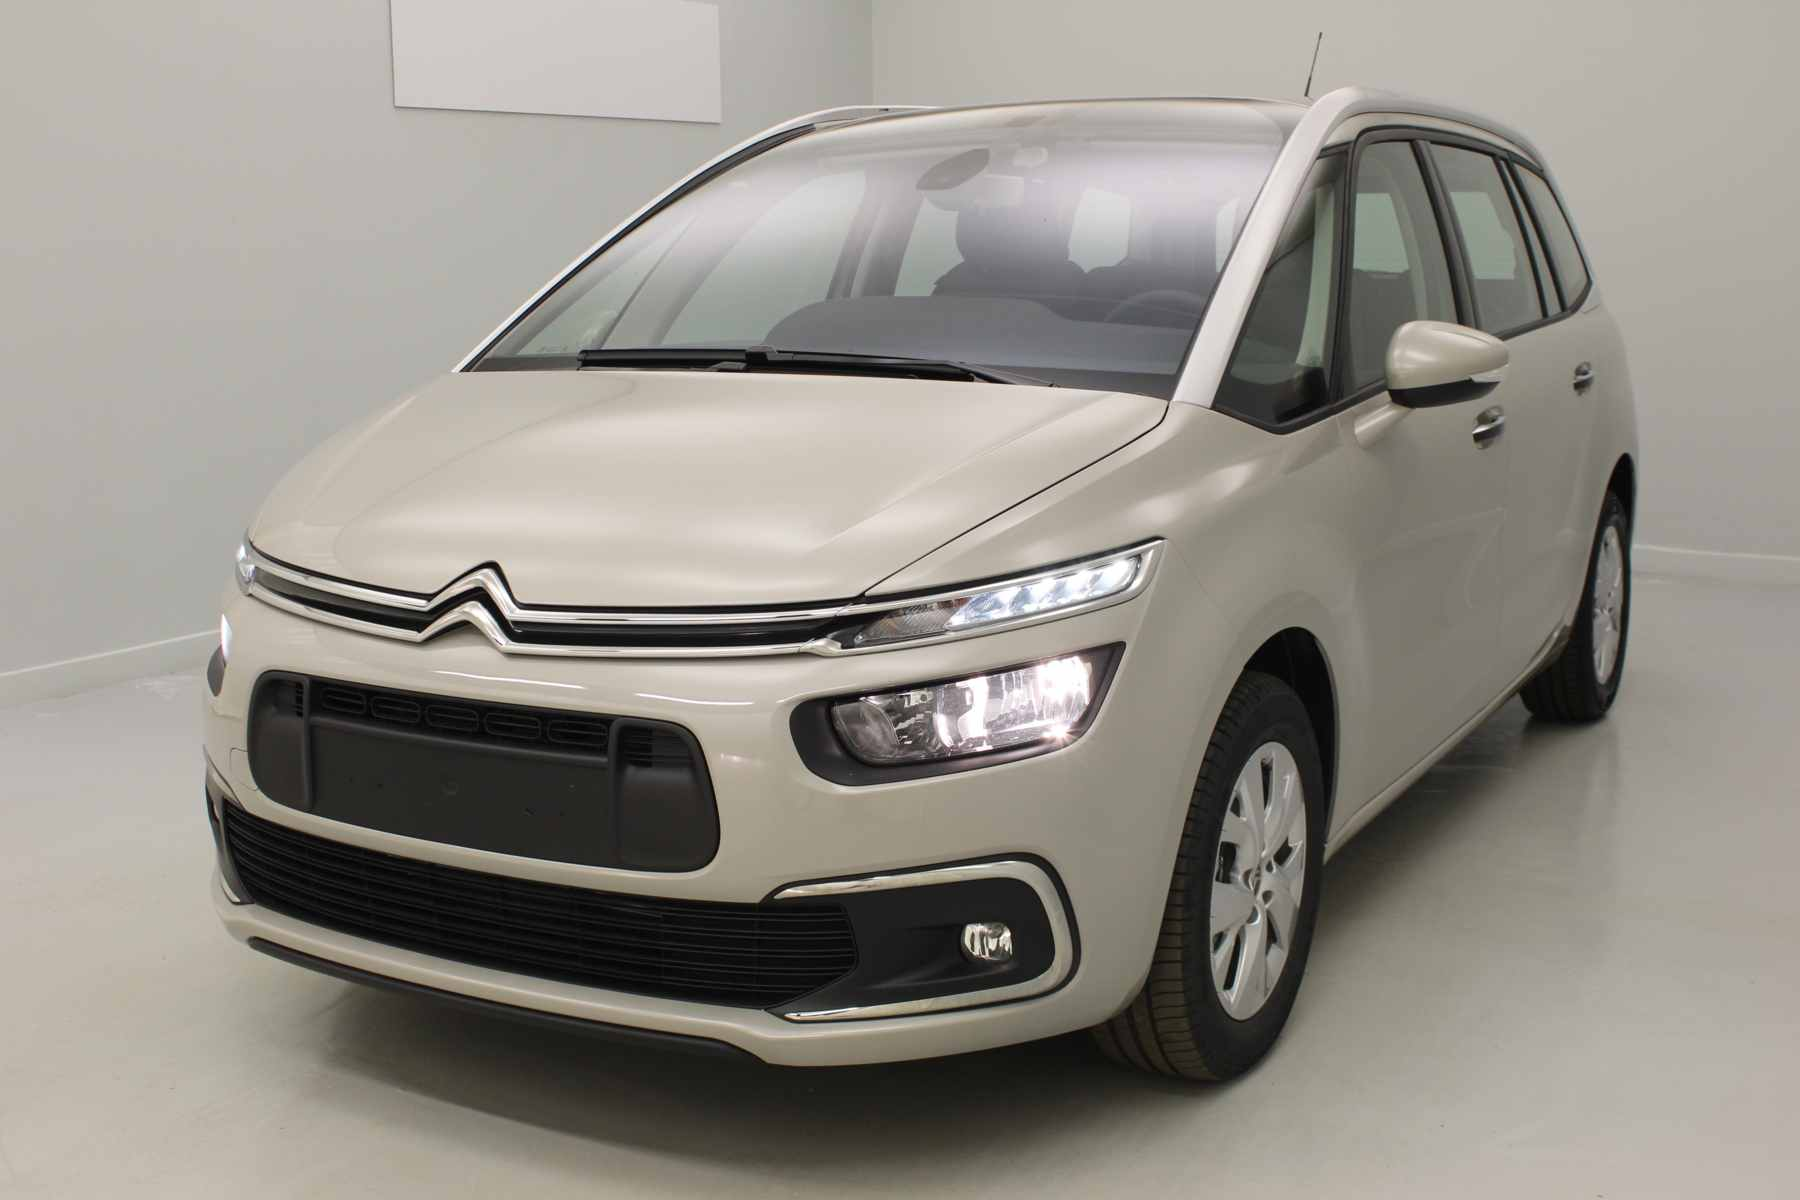 CITROEN Grand C4 Picasso Nouveau THP 165 S&S Shine EAT6 Sable avec options